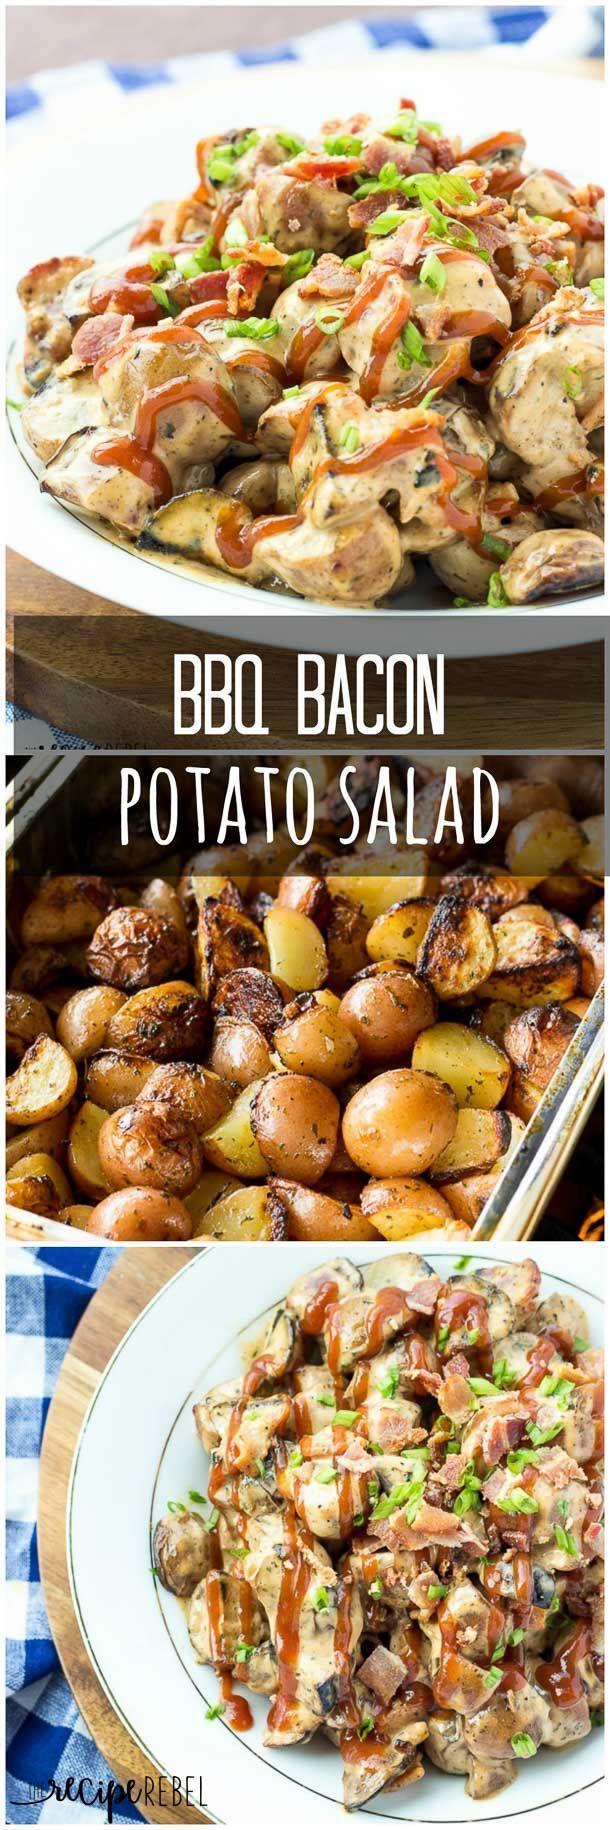 BBQ Bacon Potato Salad with Grilled Potatoes: Creamer potatoes grilled with a blend of herbs and spices, then tossed in a creamy barbecue dressing with bacon and green onions – great warm or cold! www.thereciperebel.com